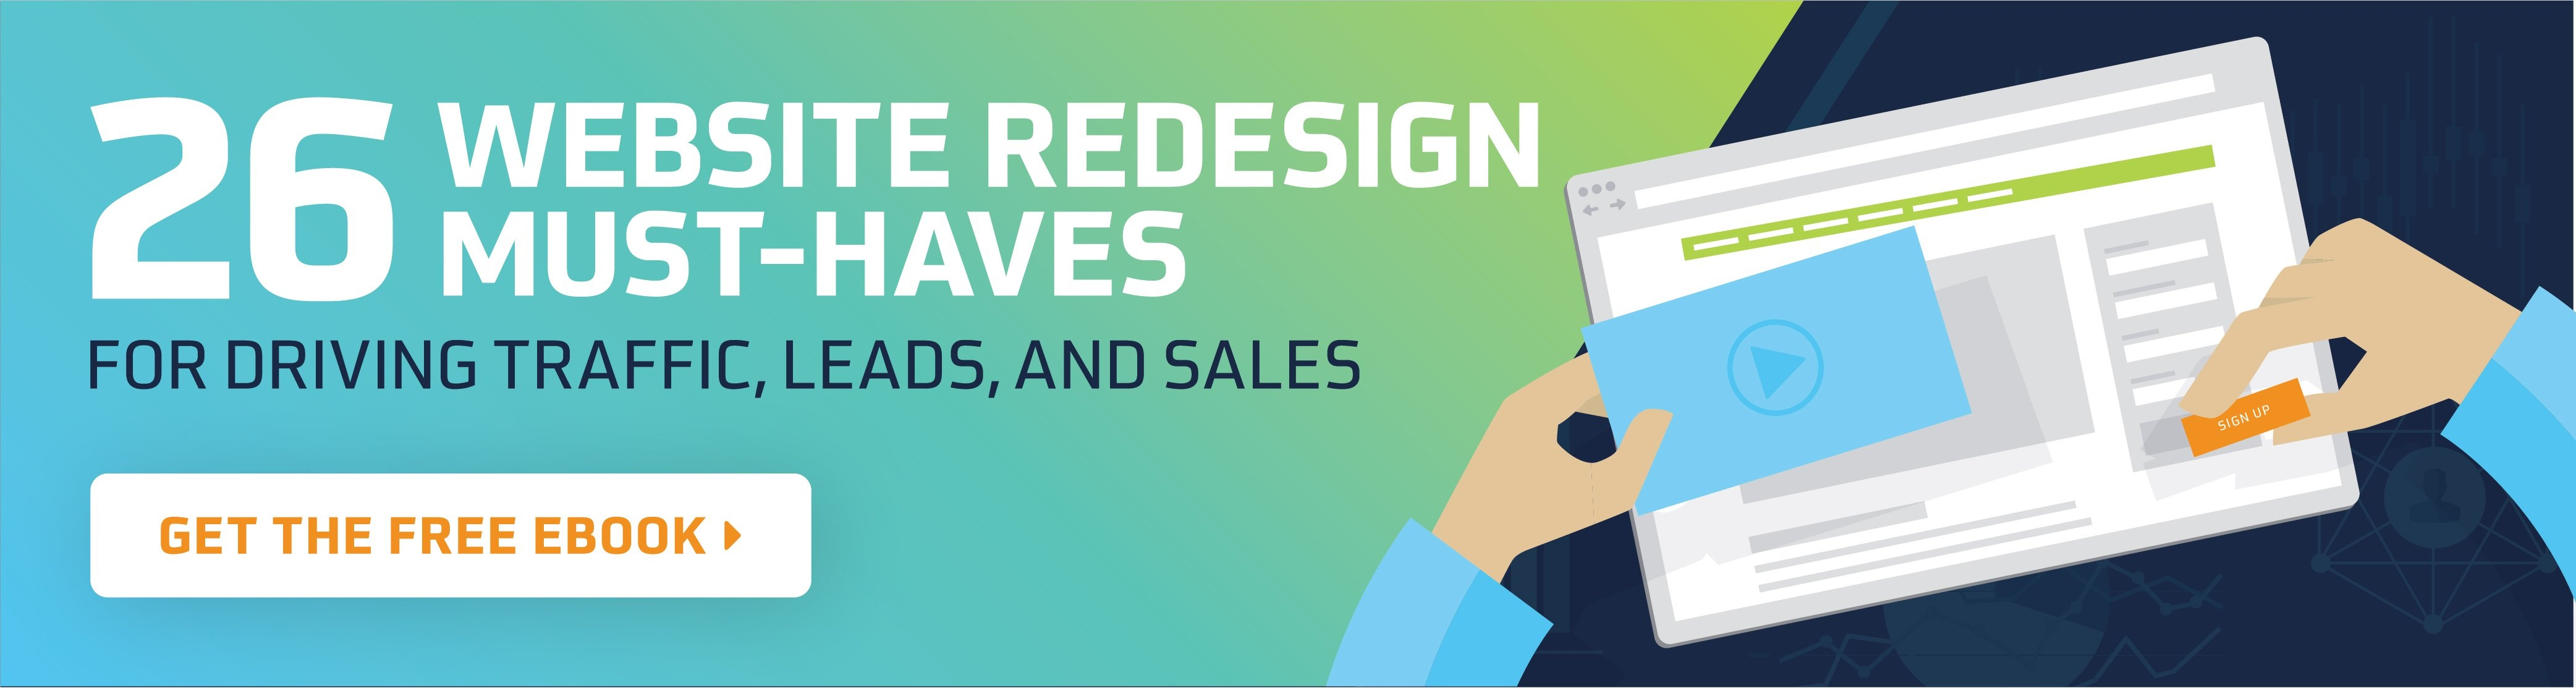 Free eBook - 26 Website Redesign Must-Haves